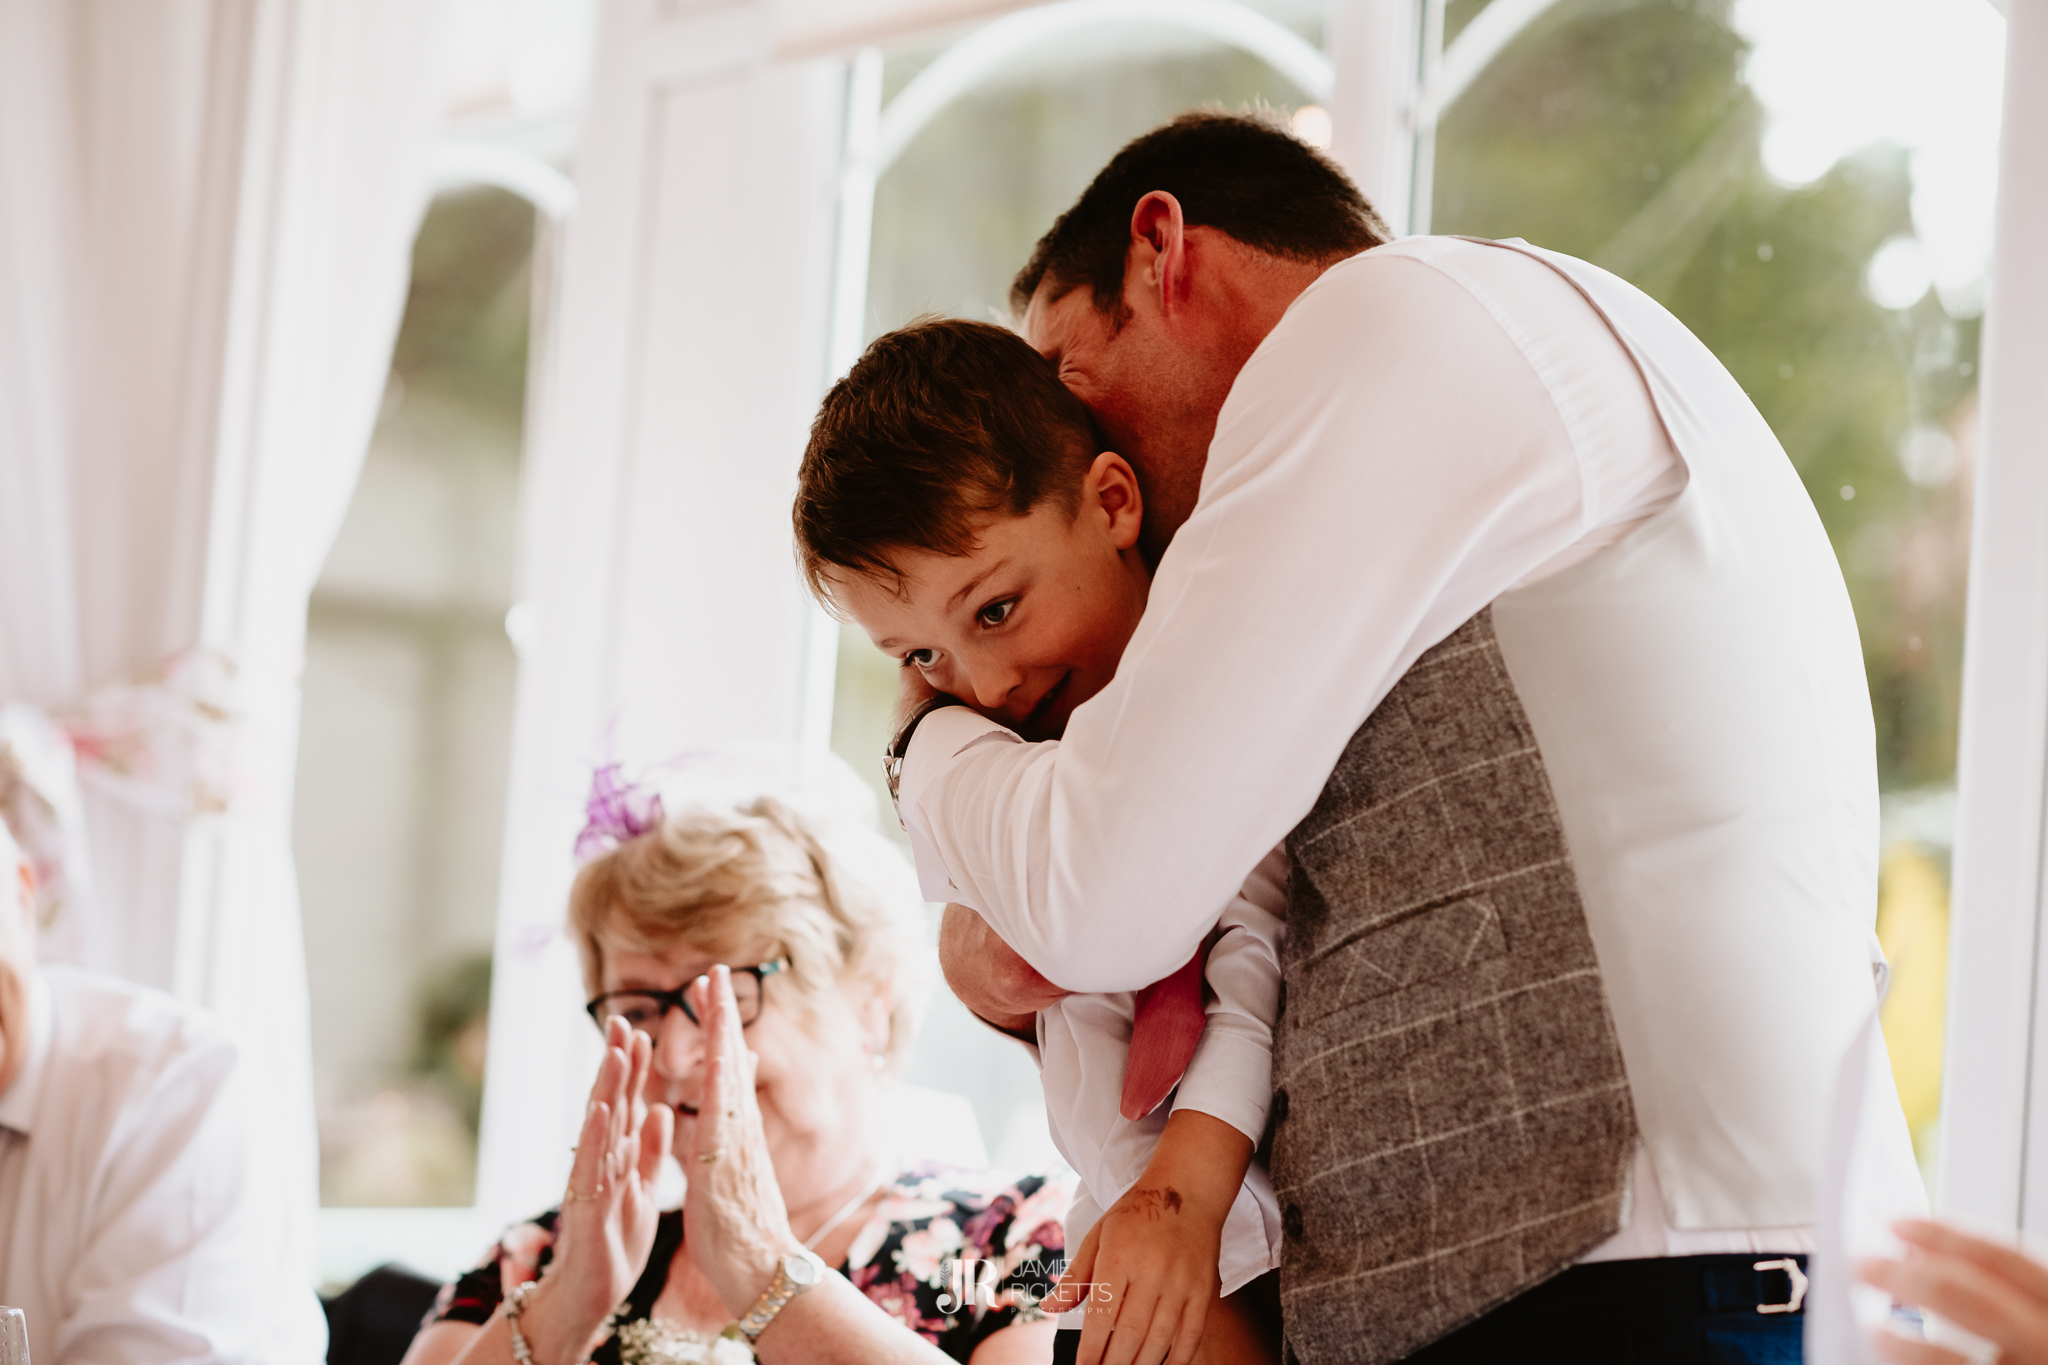 Wroxeter-Hotel-Wedding-Photography-In-Shropshire-By-Shropshire-Wedding-Photographer-Jamie-Ricketts-174.JPG